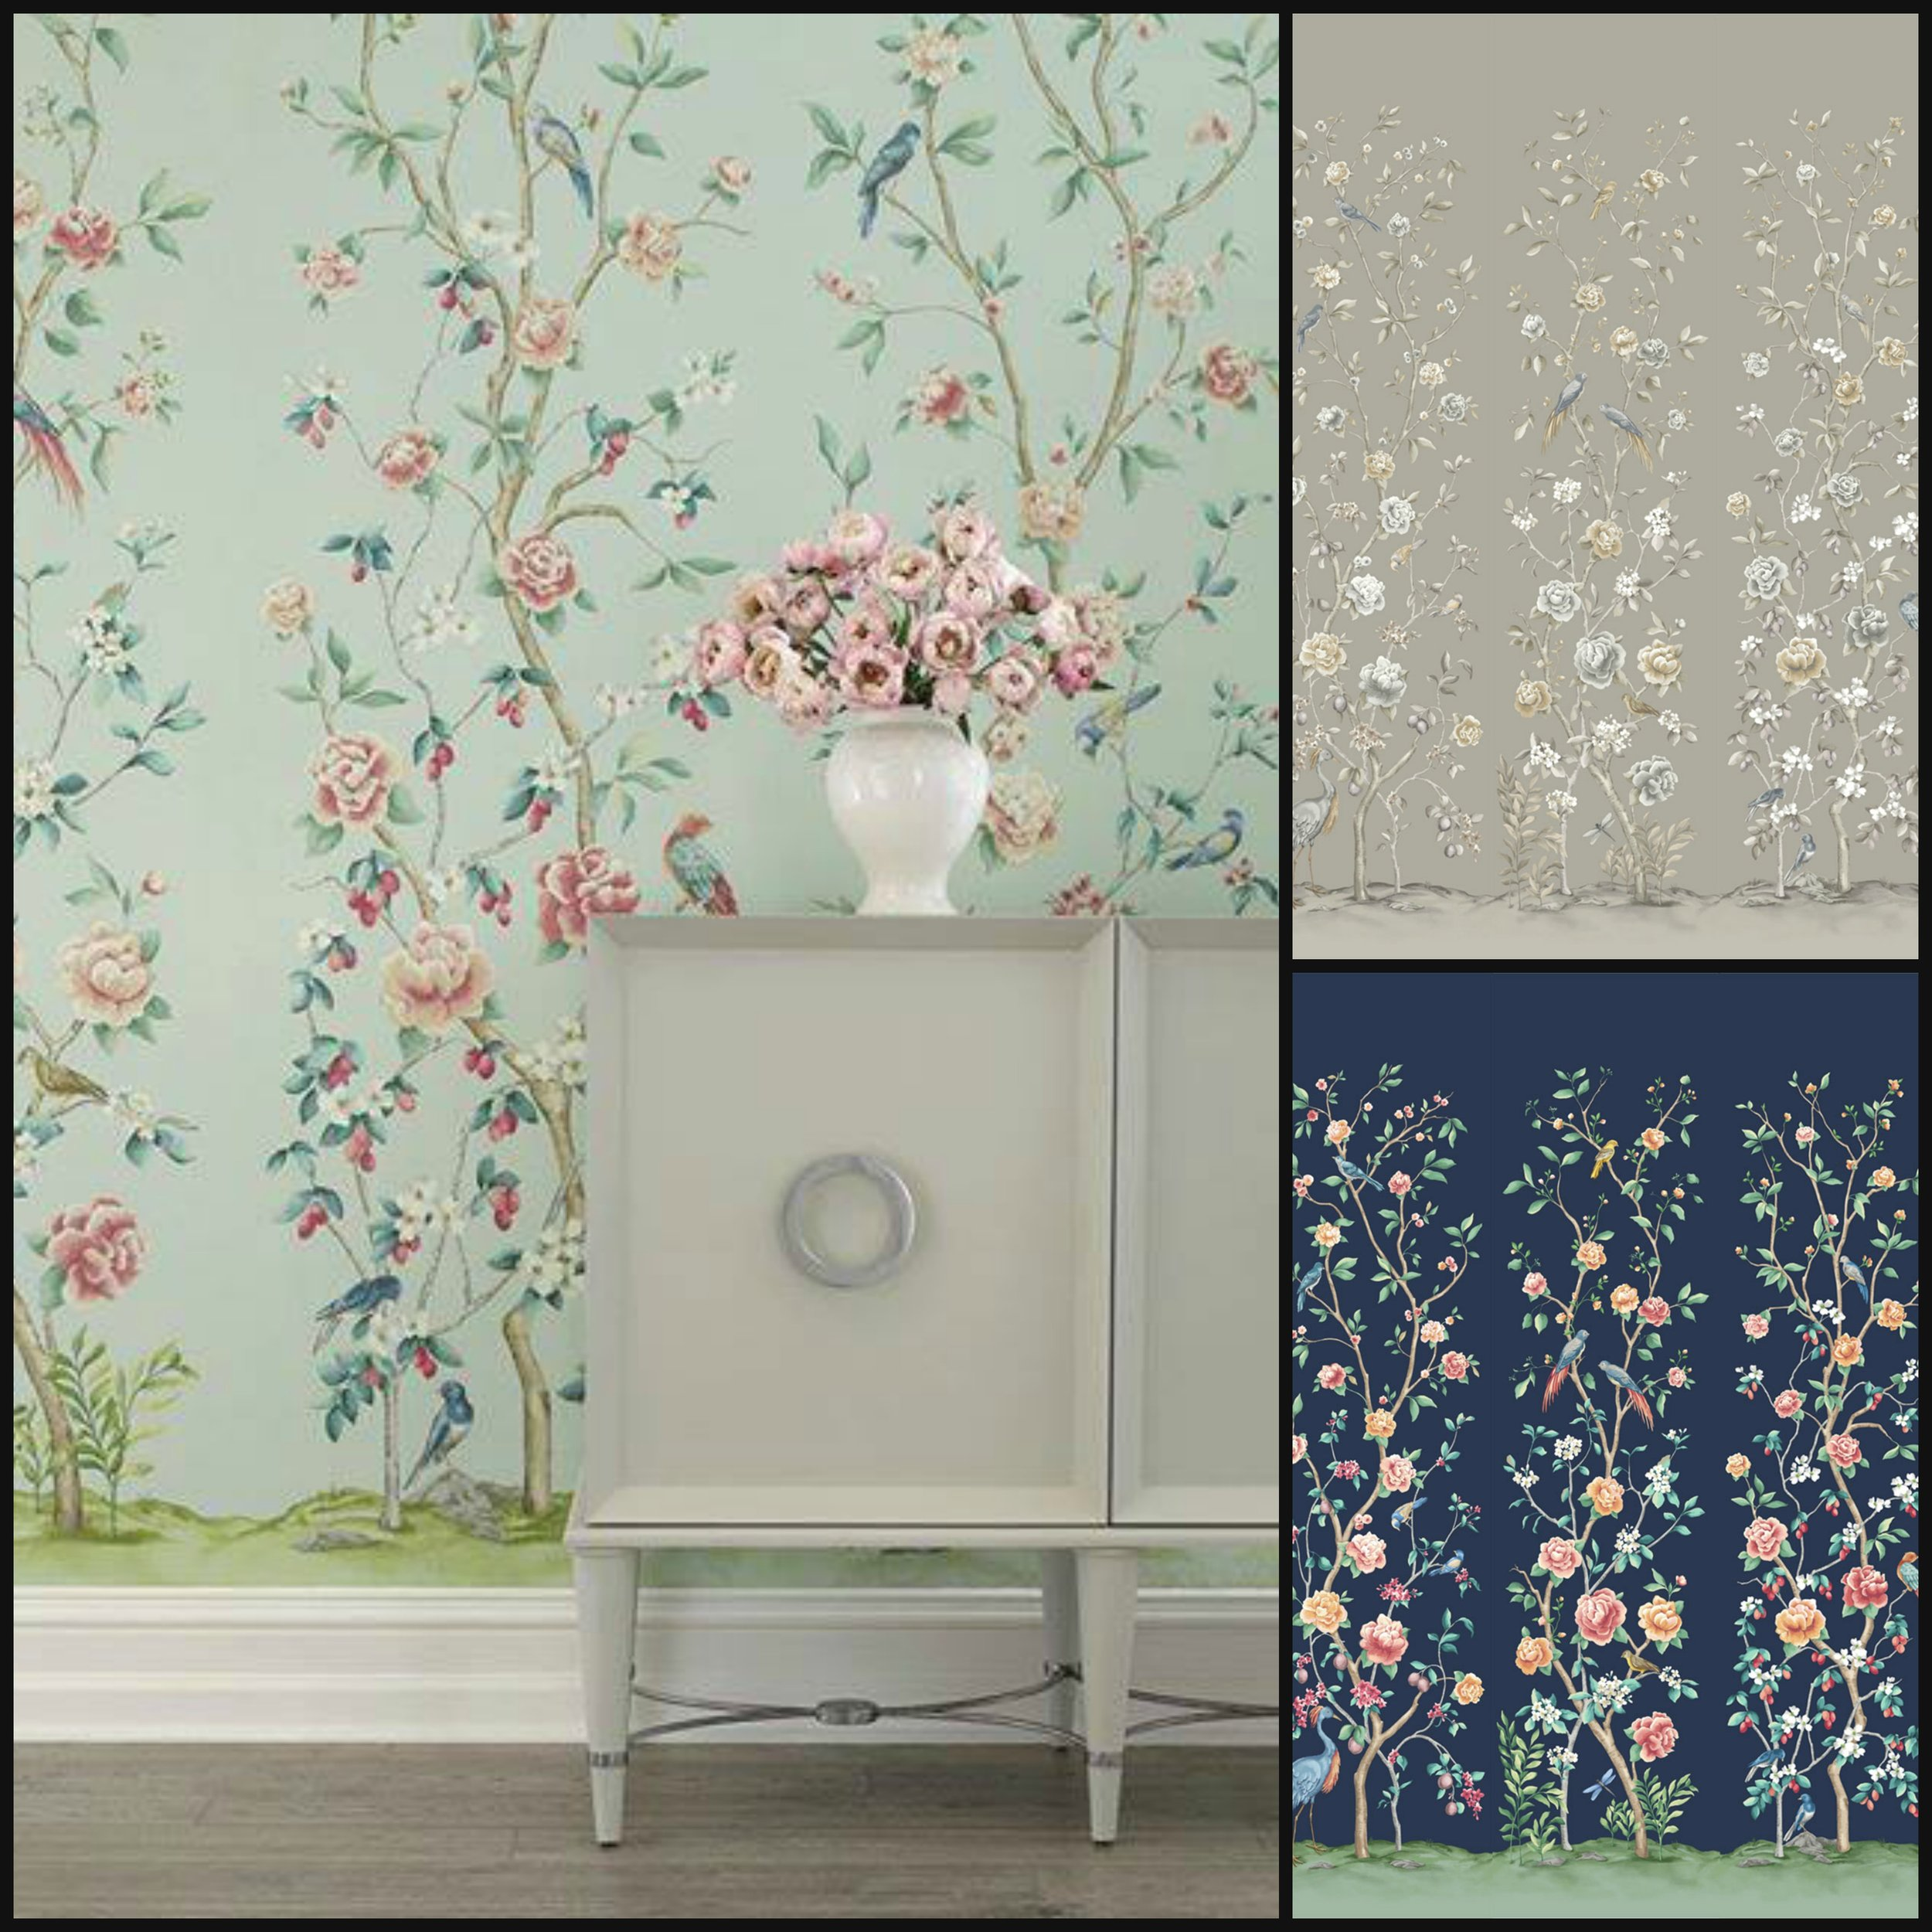 Chinoiserie - Depicting Asian motifs in a decorative style, Chinoiserie was most popular in the late 1700's. This typically whimsical scenery is trending today in wallpapers, fabrics, painted furnishings and is a lovely backdrop for dining and conversation.